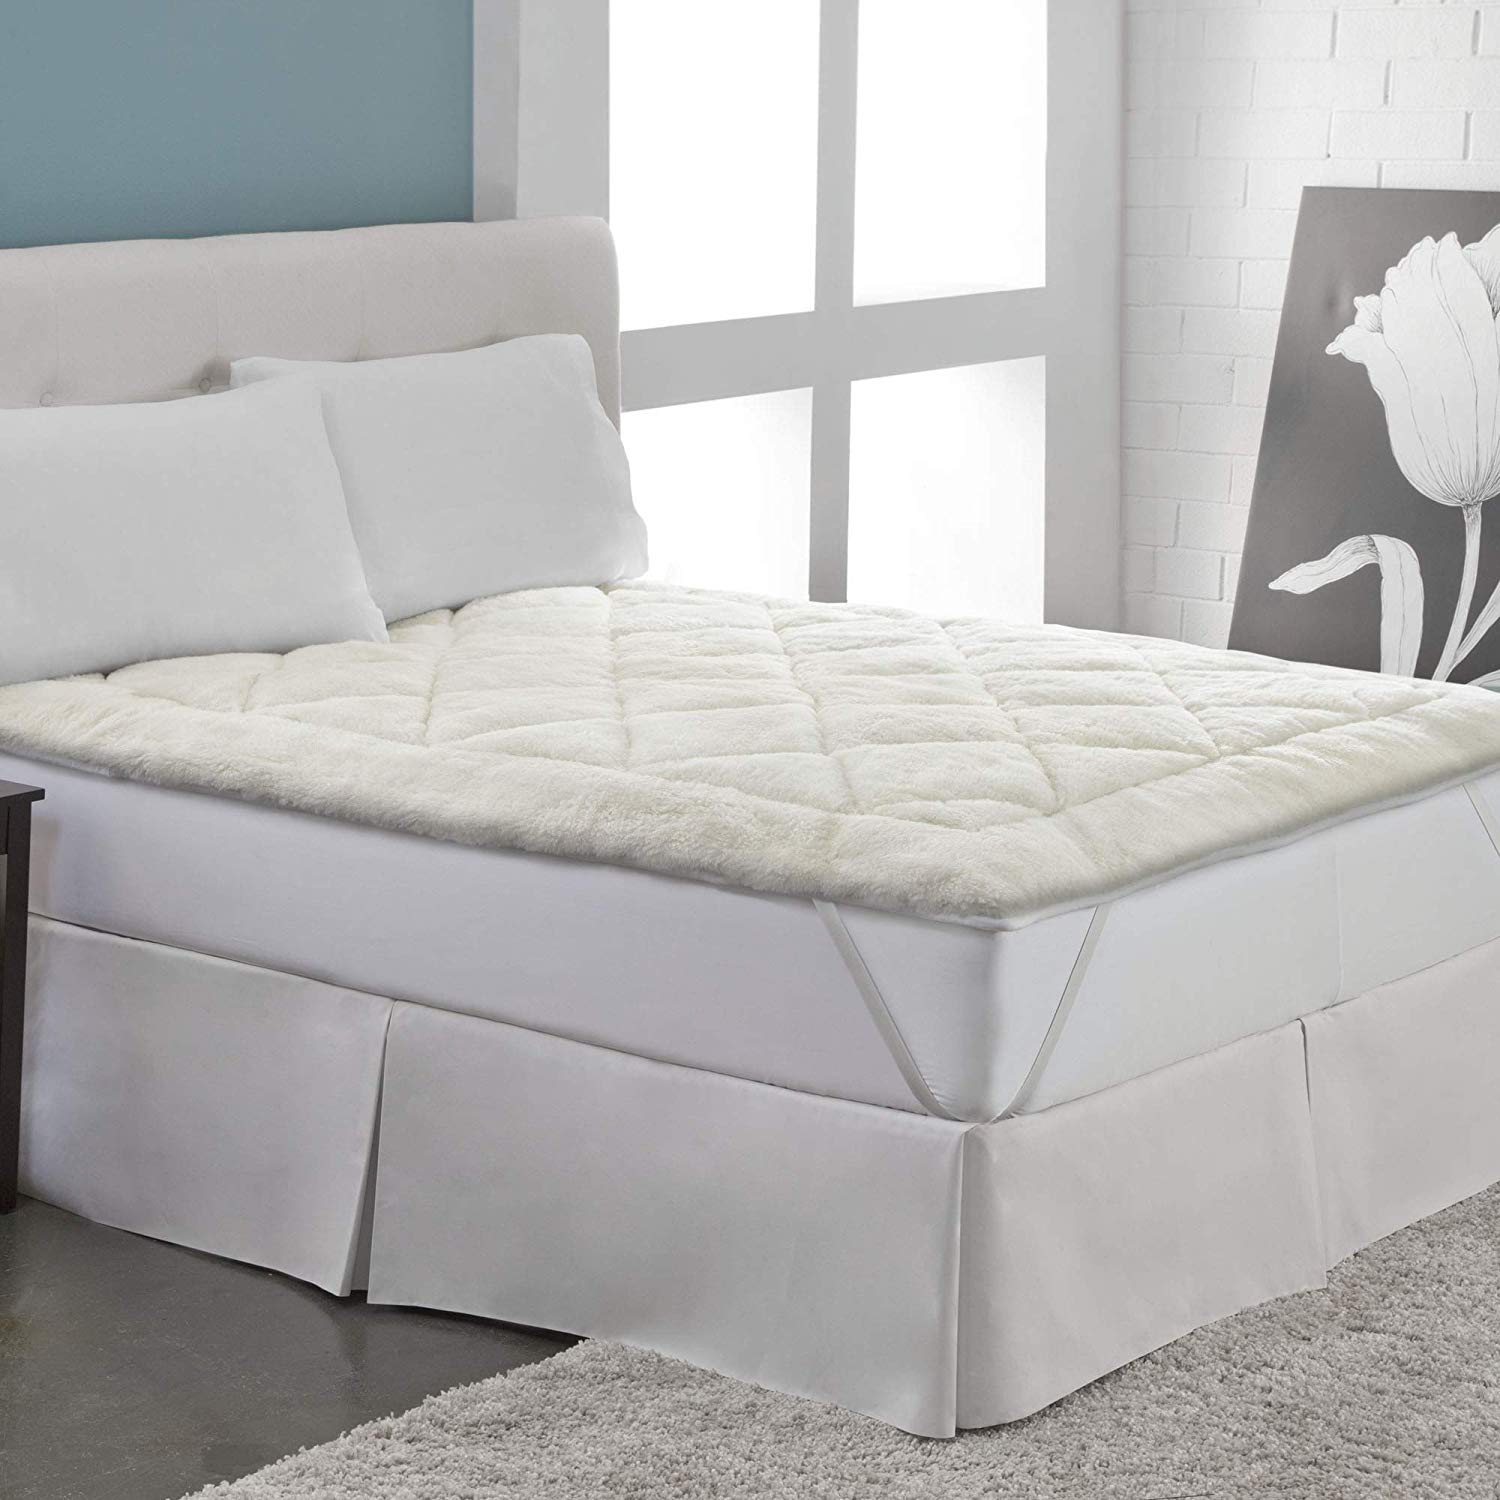 Perfect Fit Wool Mattress Topper Review by www.snoremagazine.com